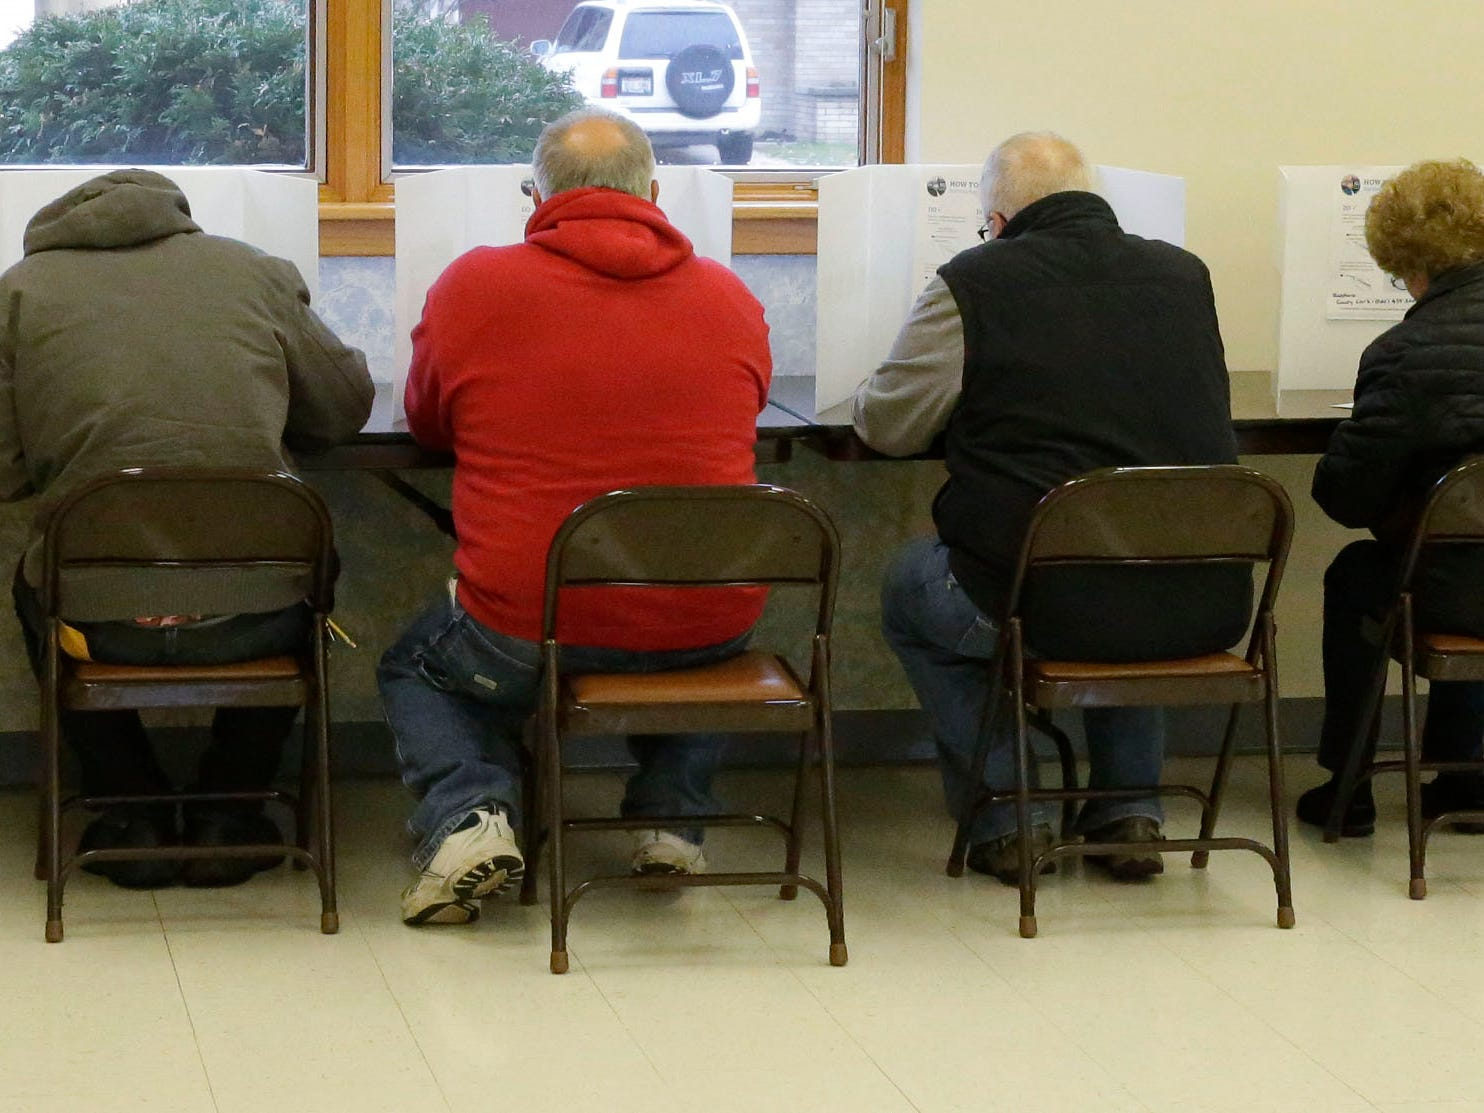 Space was limited at a table of ballot stations at Good Shepard Lutheran Church, Tuesday, November 6, 2018, in Sheboygan, Wis.